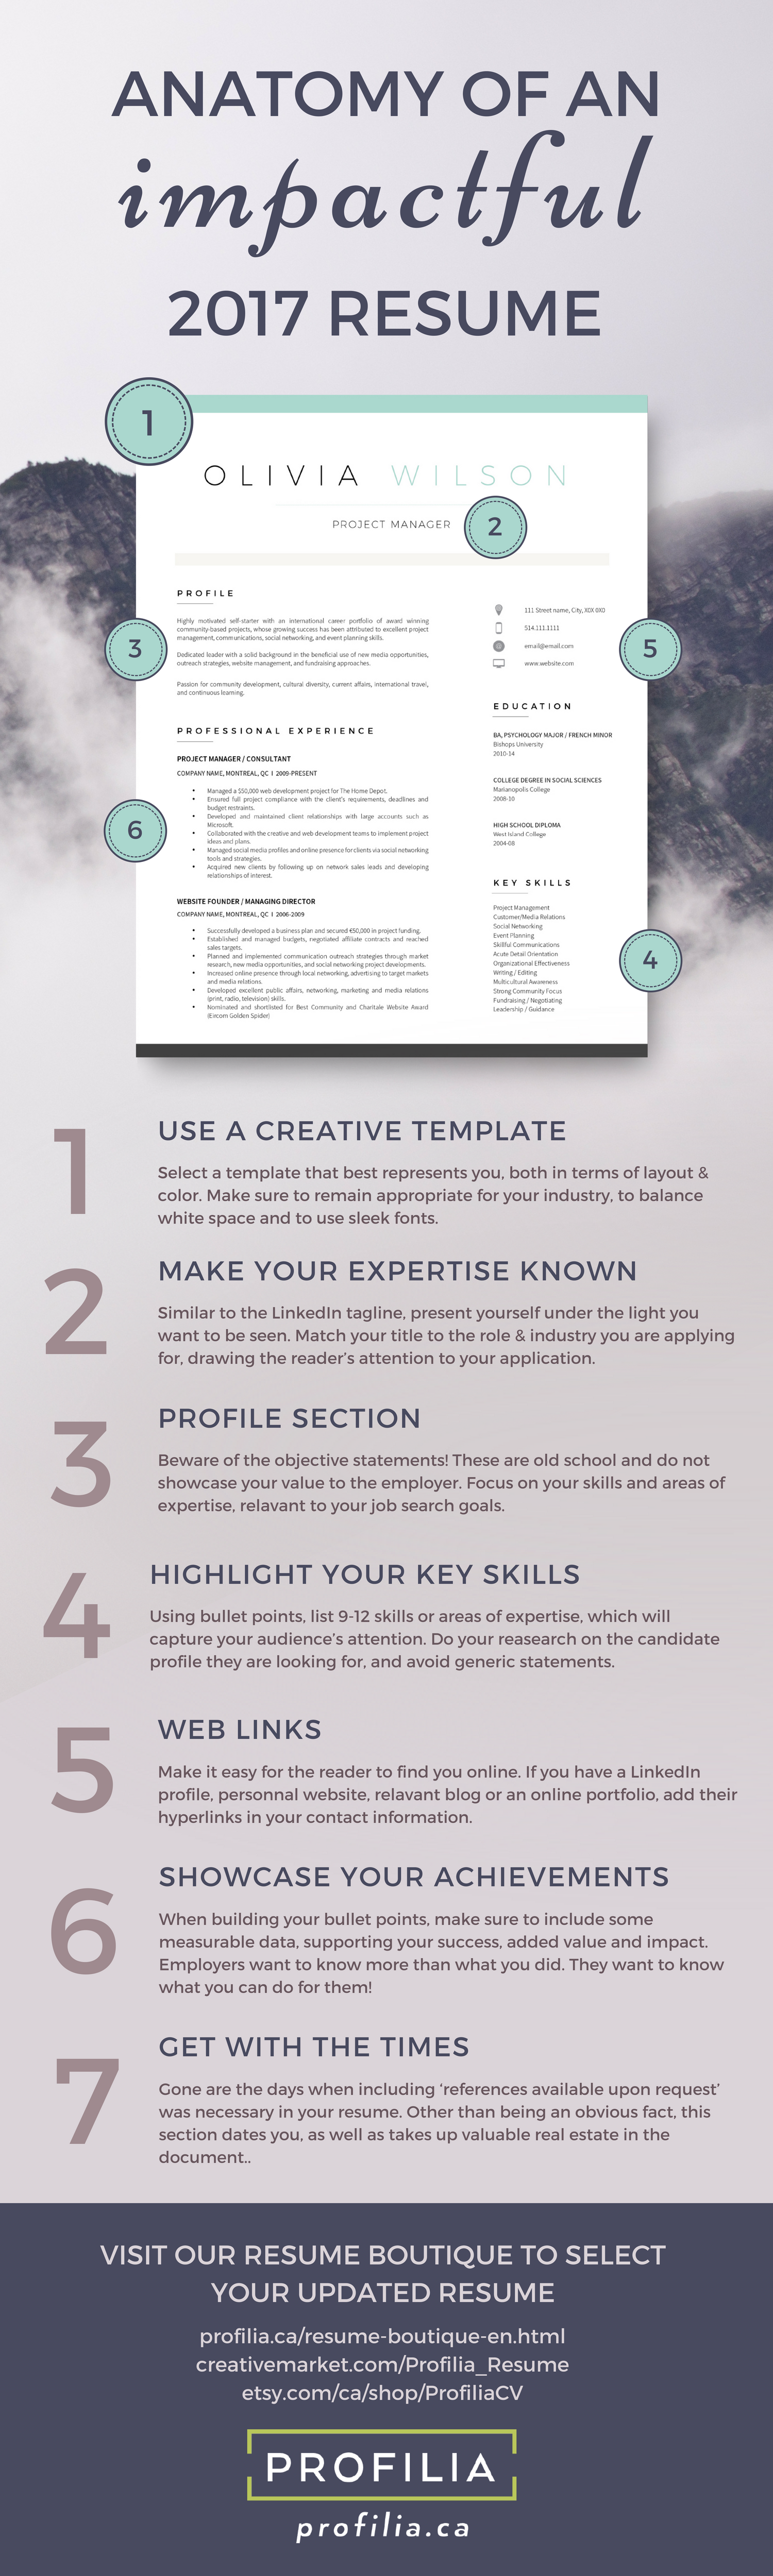 anatomy of an impactful resume  resume  resumetips  resumetemplate  resumeadvice  creativeresume